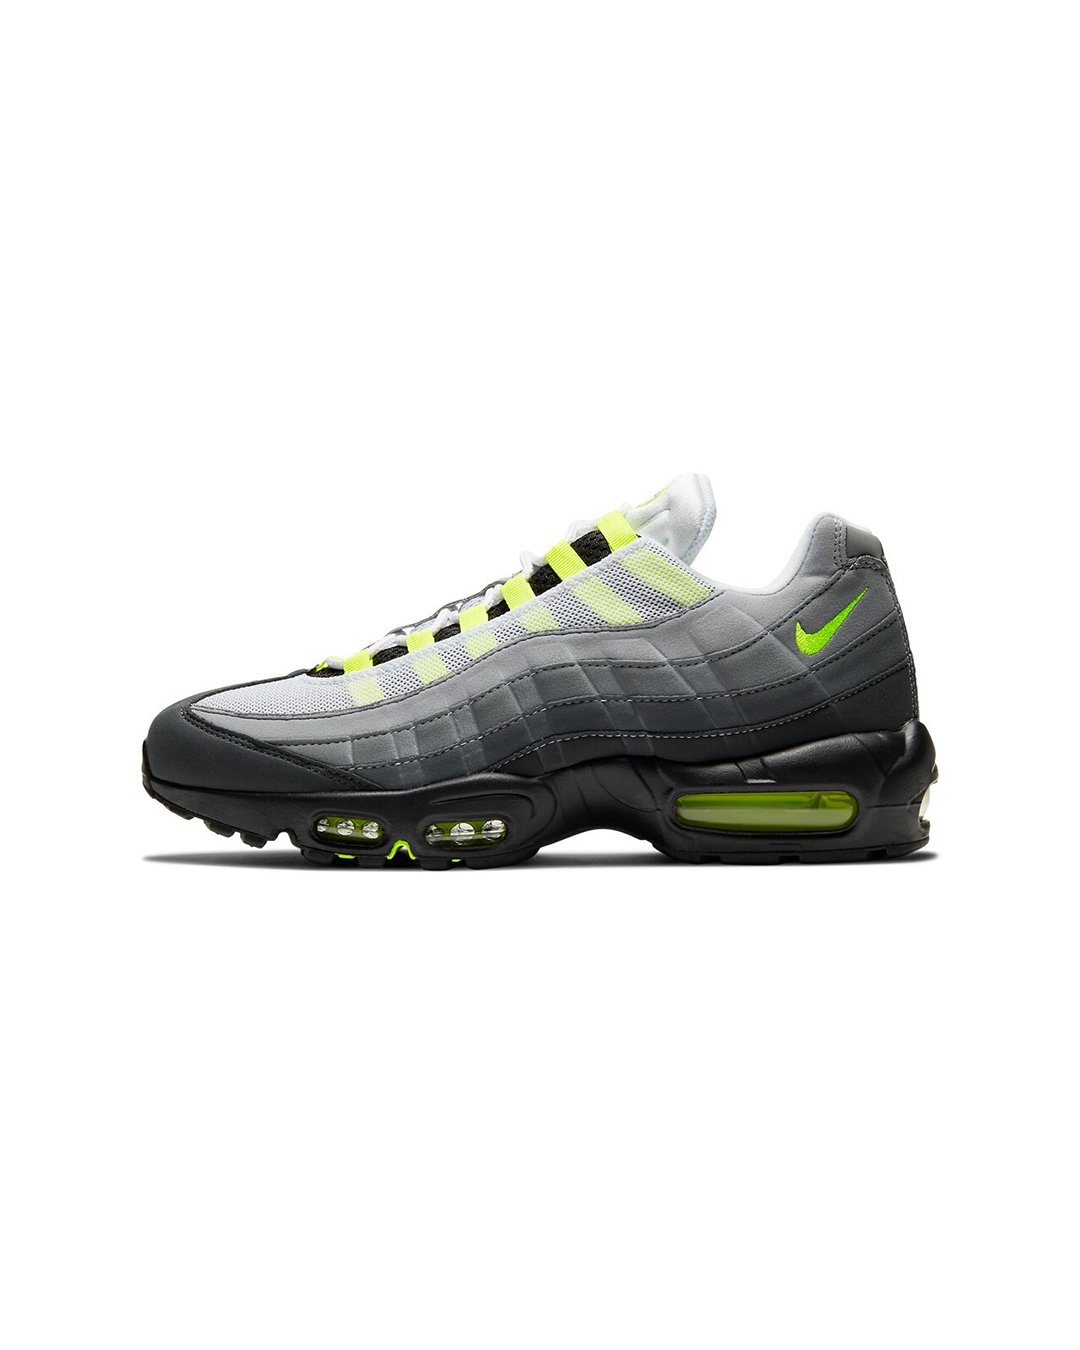 Nike's Air Max 95 OG Neon is back again